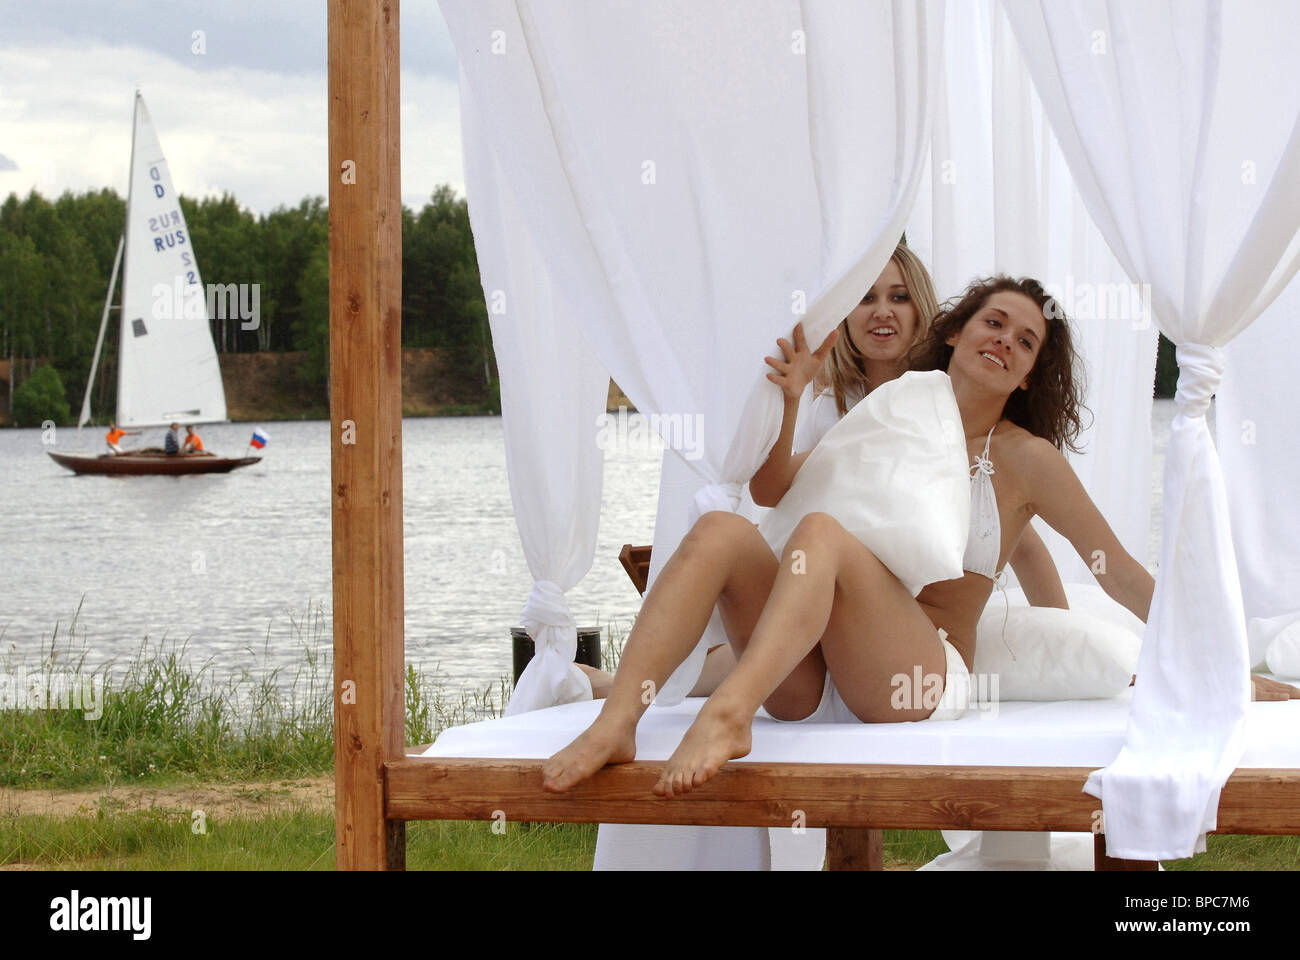 Holiday makers in Moscow Region during summer vacation season - Stock Image